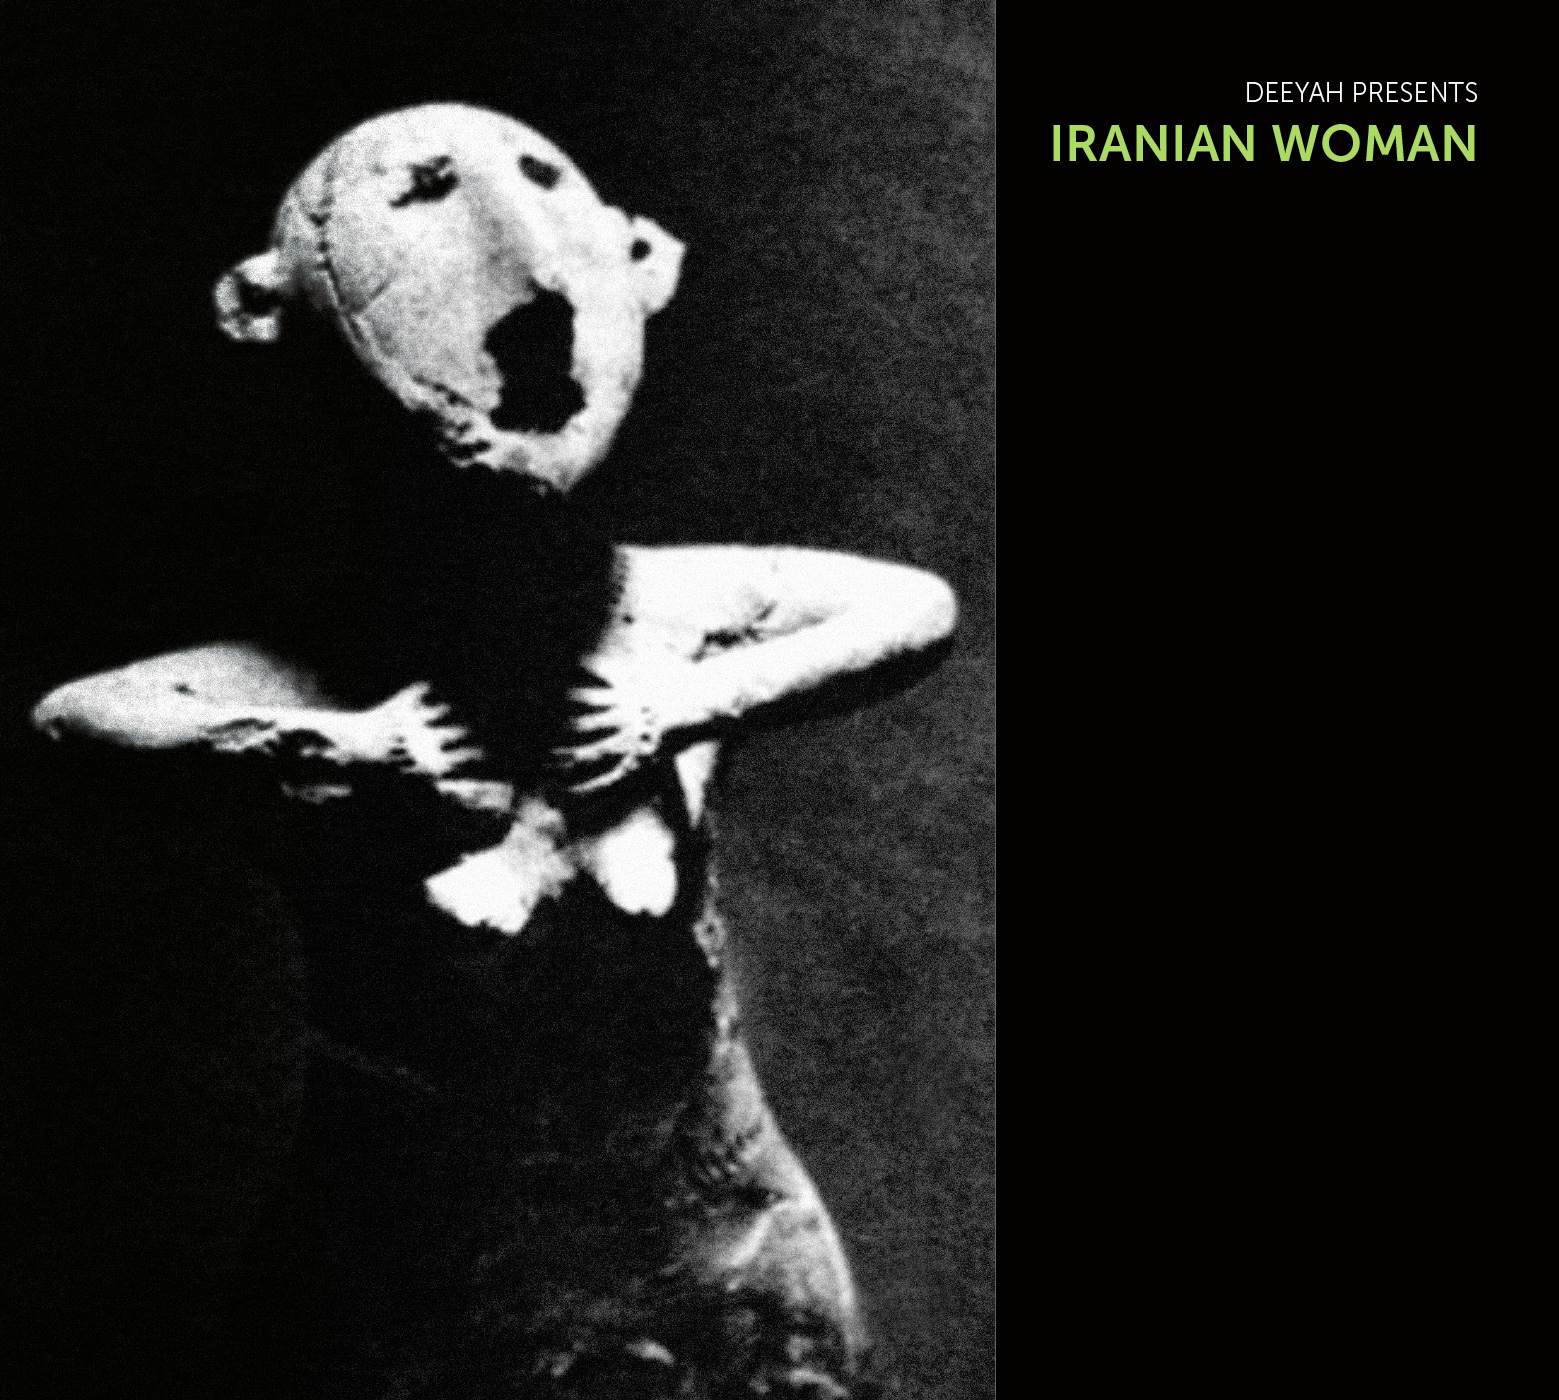 Deeyah Presents IRANIAN WOMAN